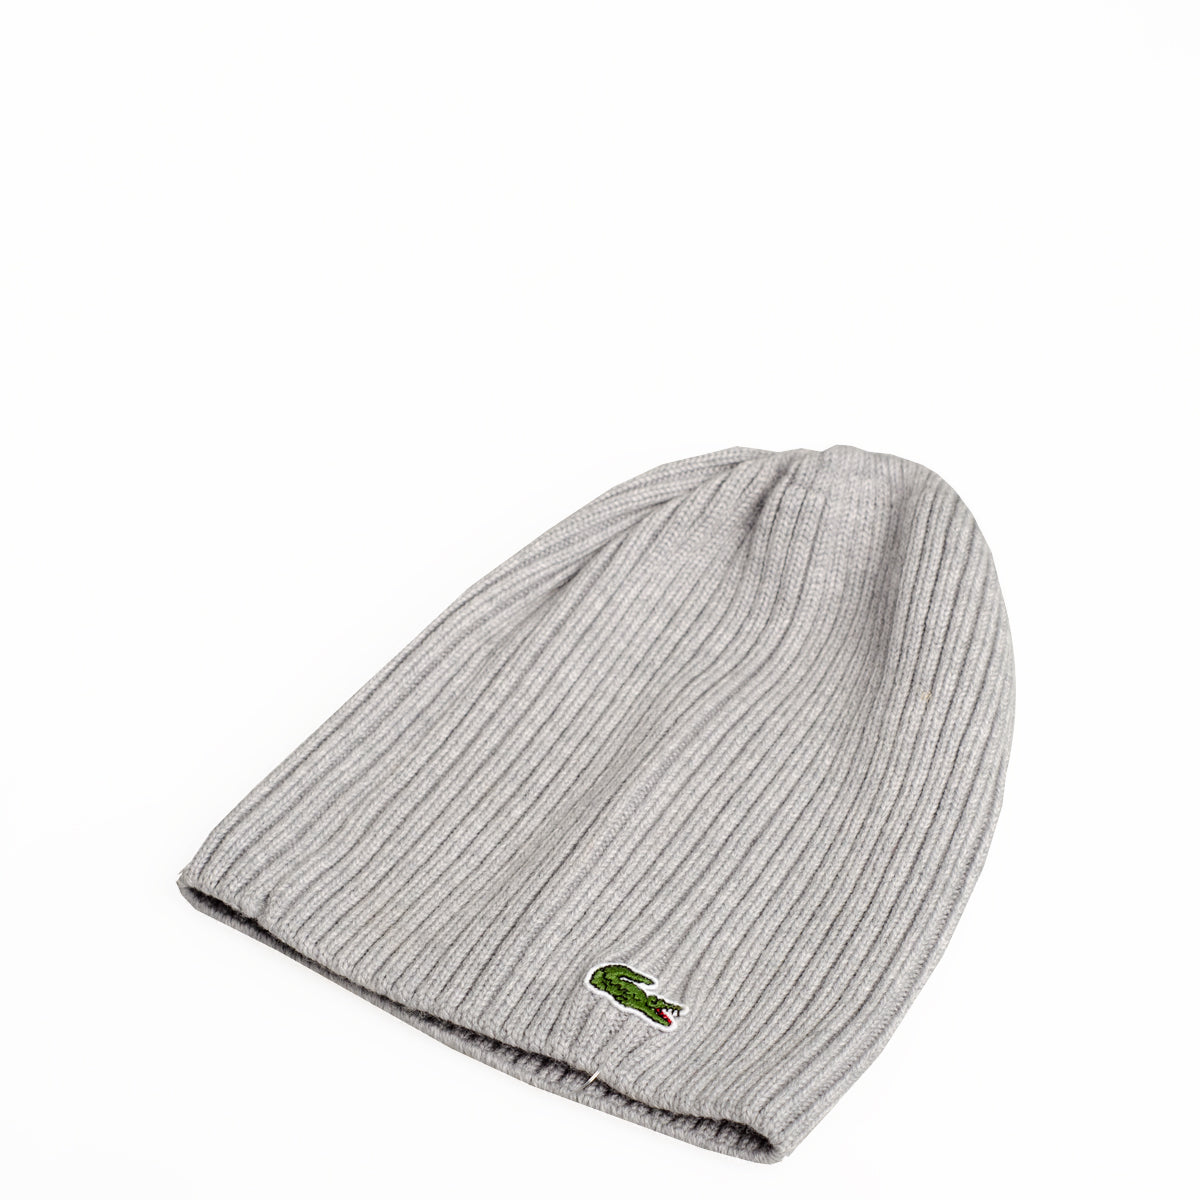 4205547a4 Men's Lacoste Ribbed Wool Beanie Light Grey - 6 3/4 / LIGHT GRAY